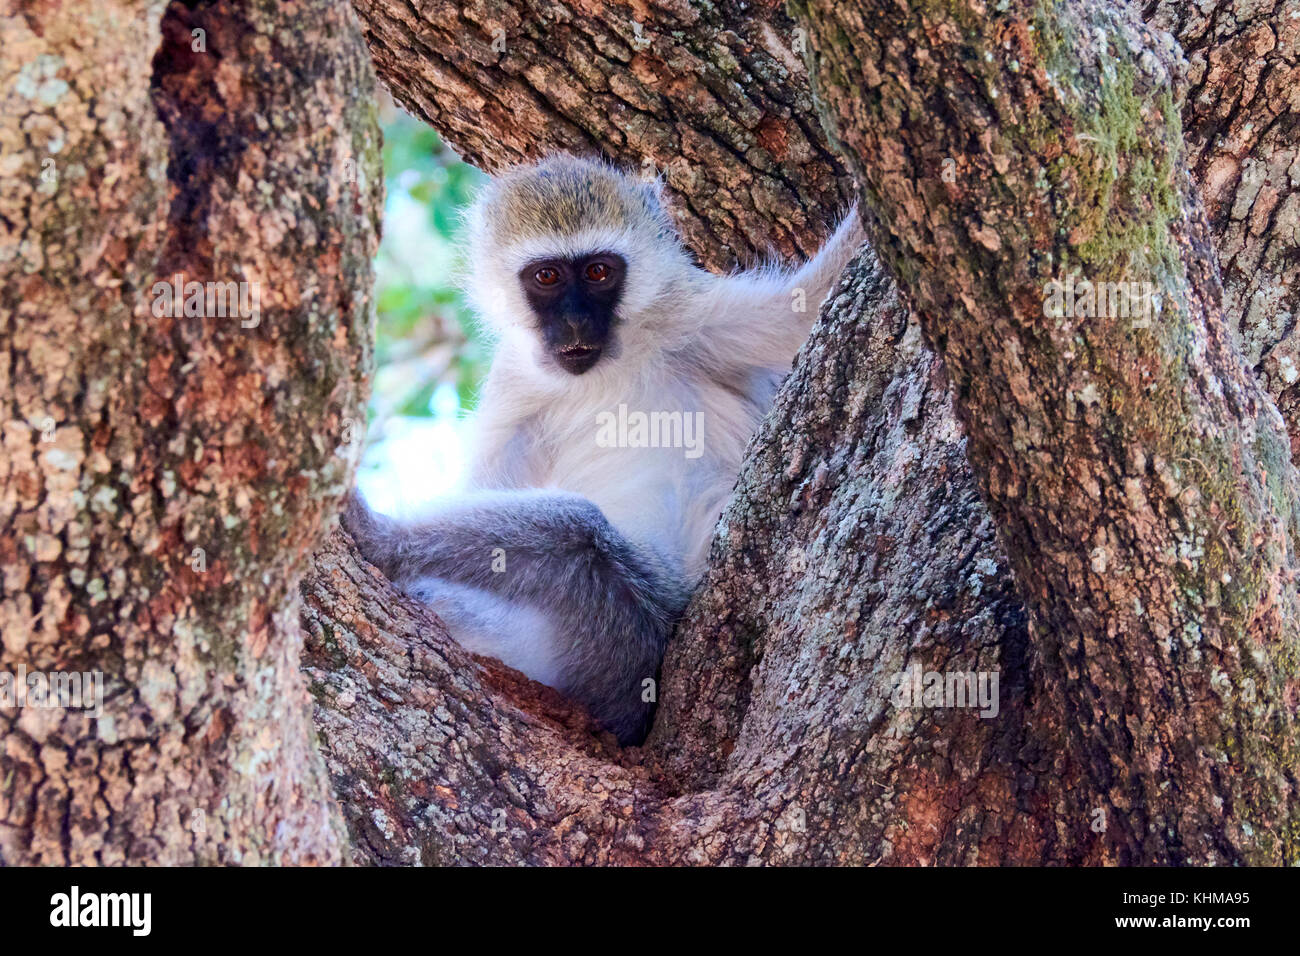 Vervet monkey in a tree tanzania - Stock Image